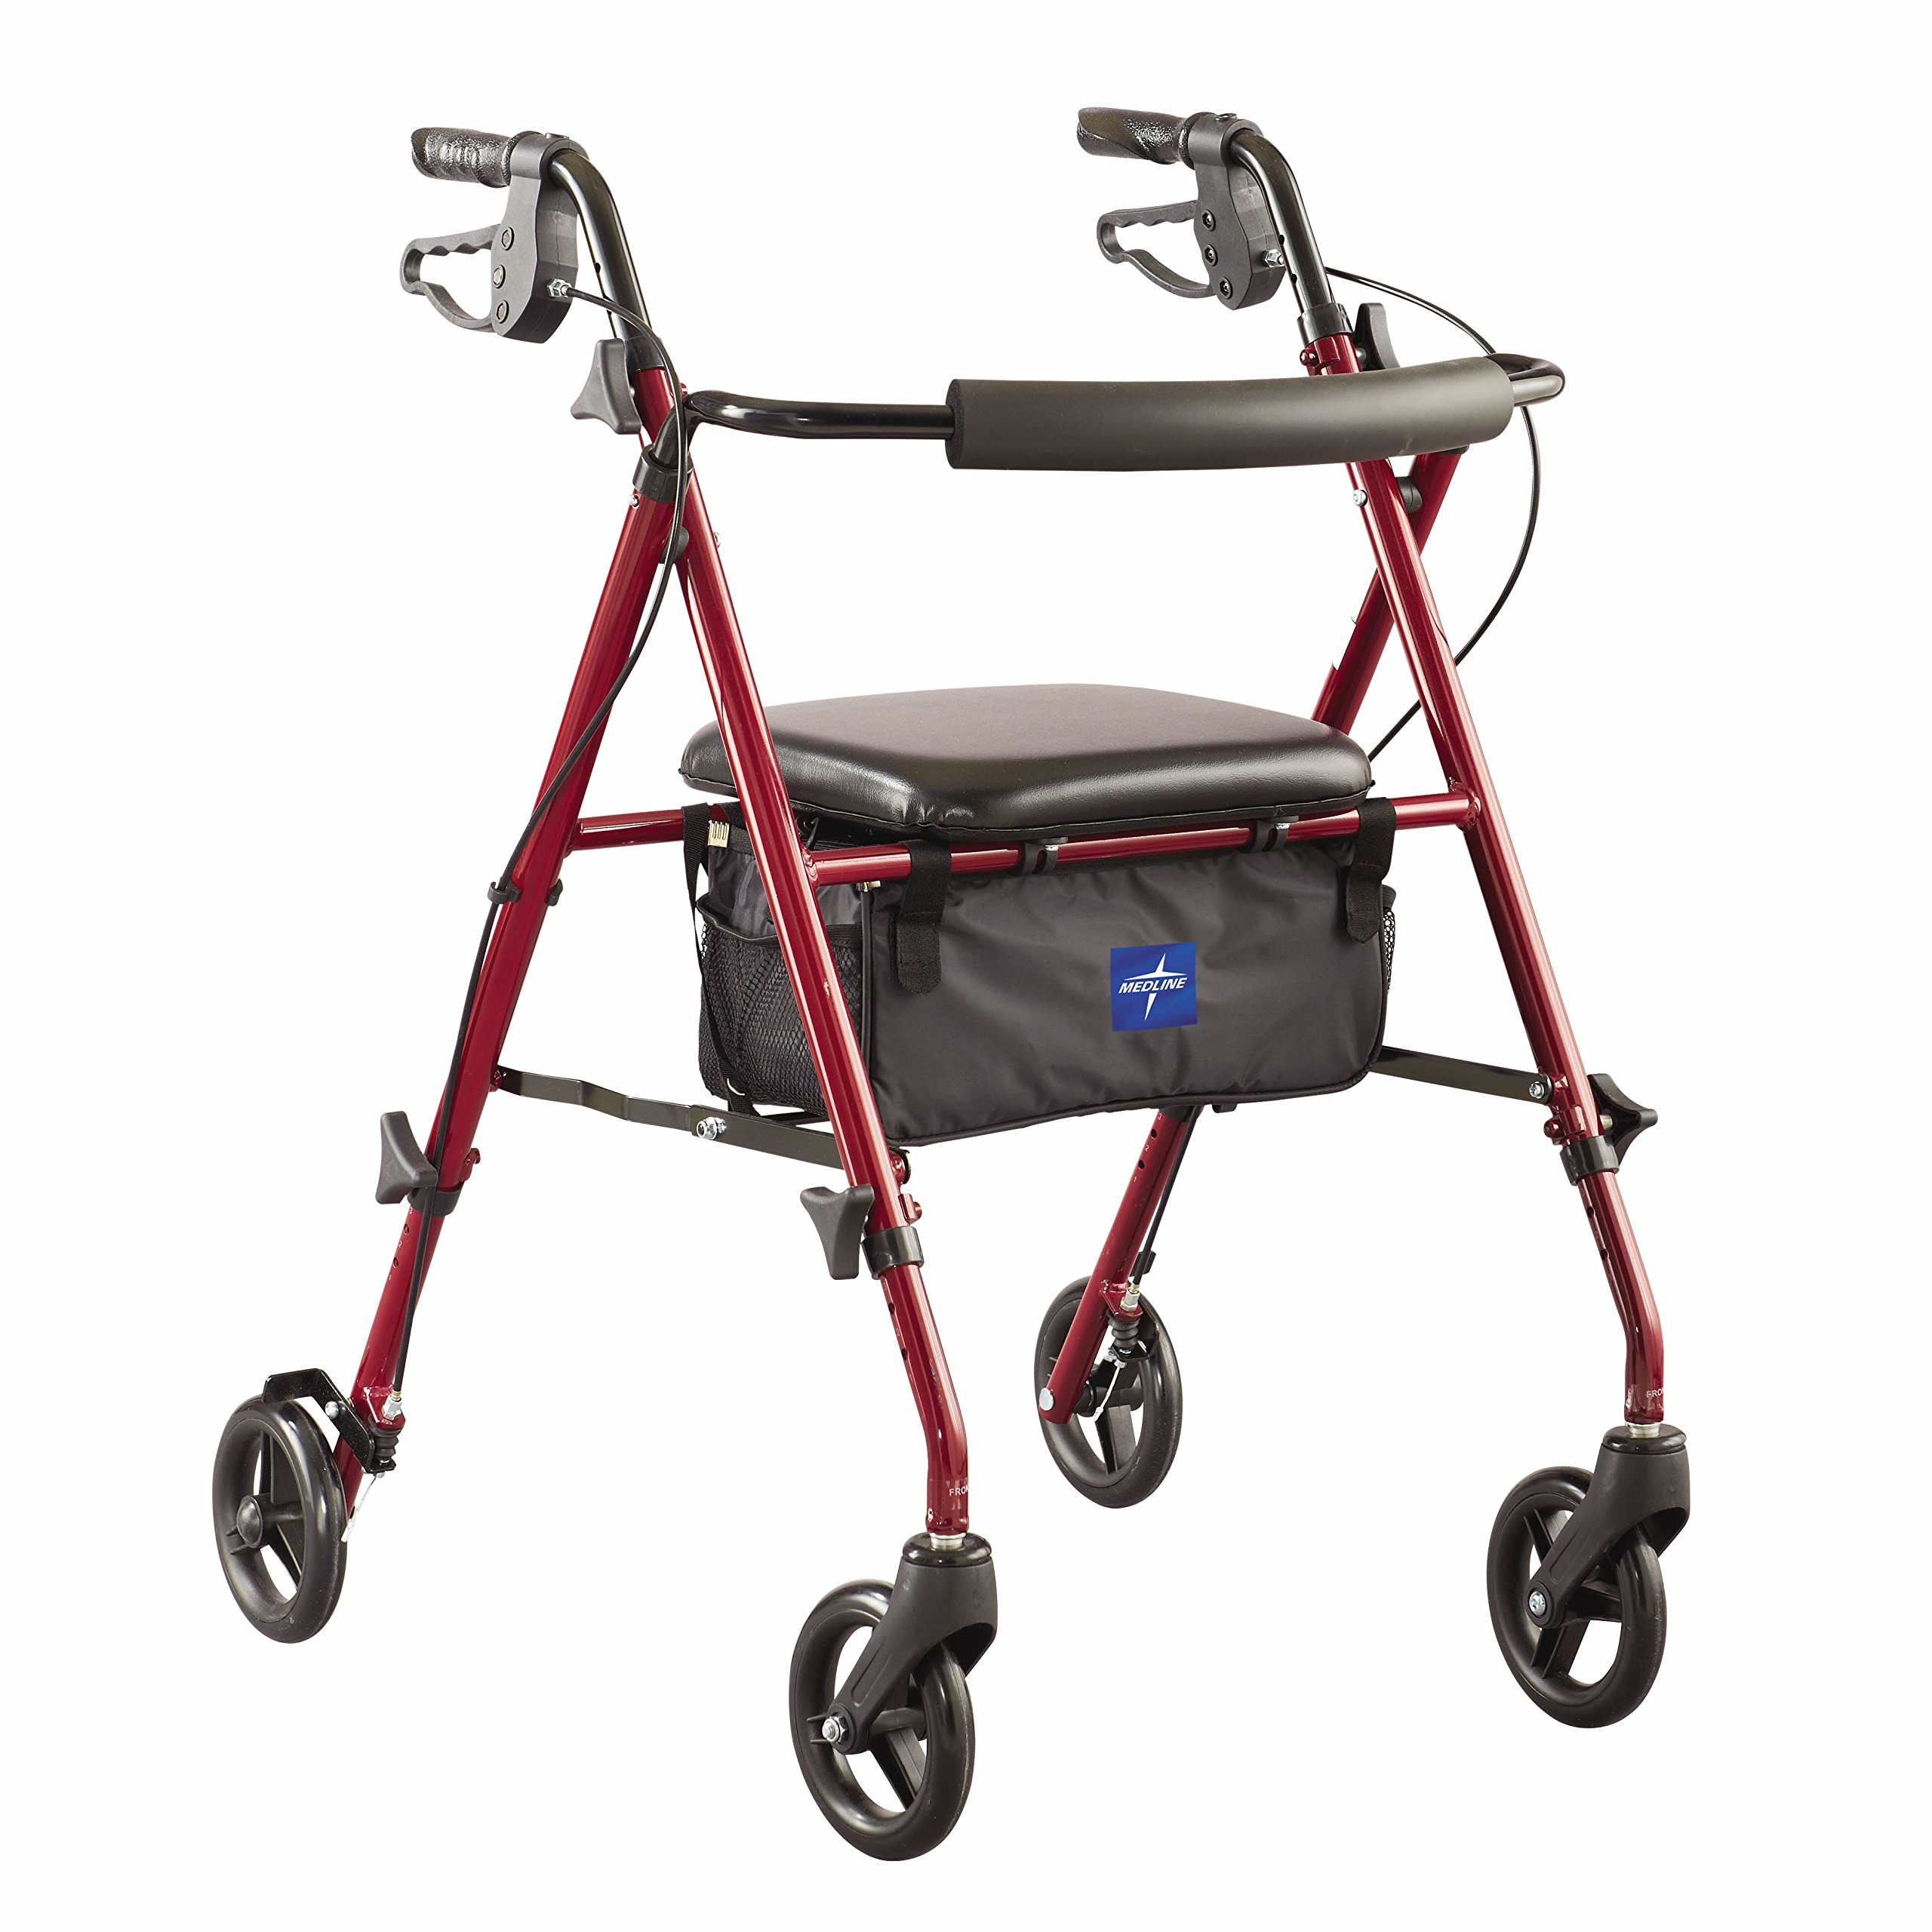 Medline Mobility Lightweight Aluminum Adjustable